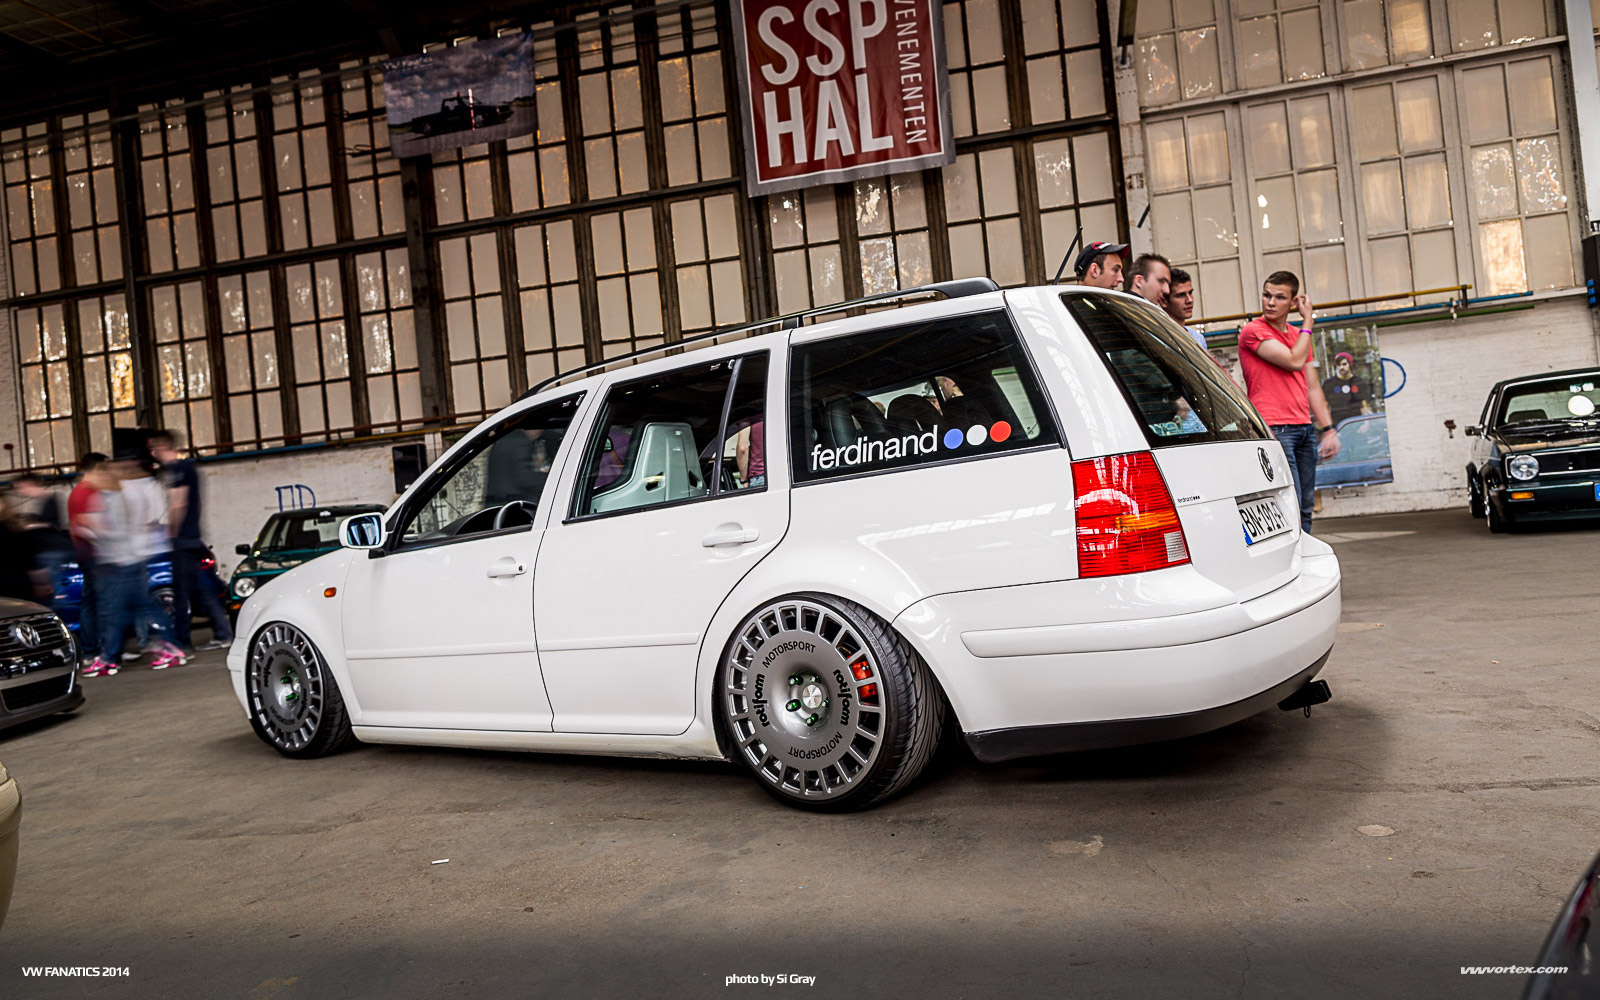 VWFanatics-2014-Si-Gray-393